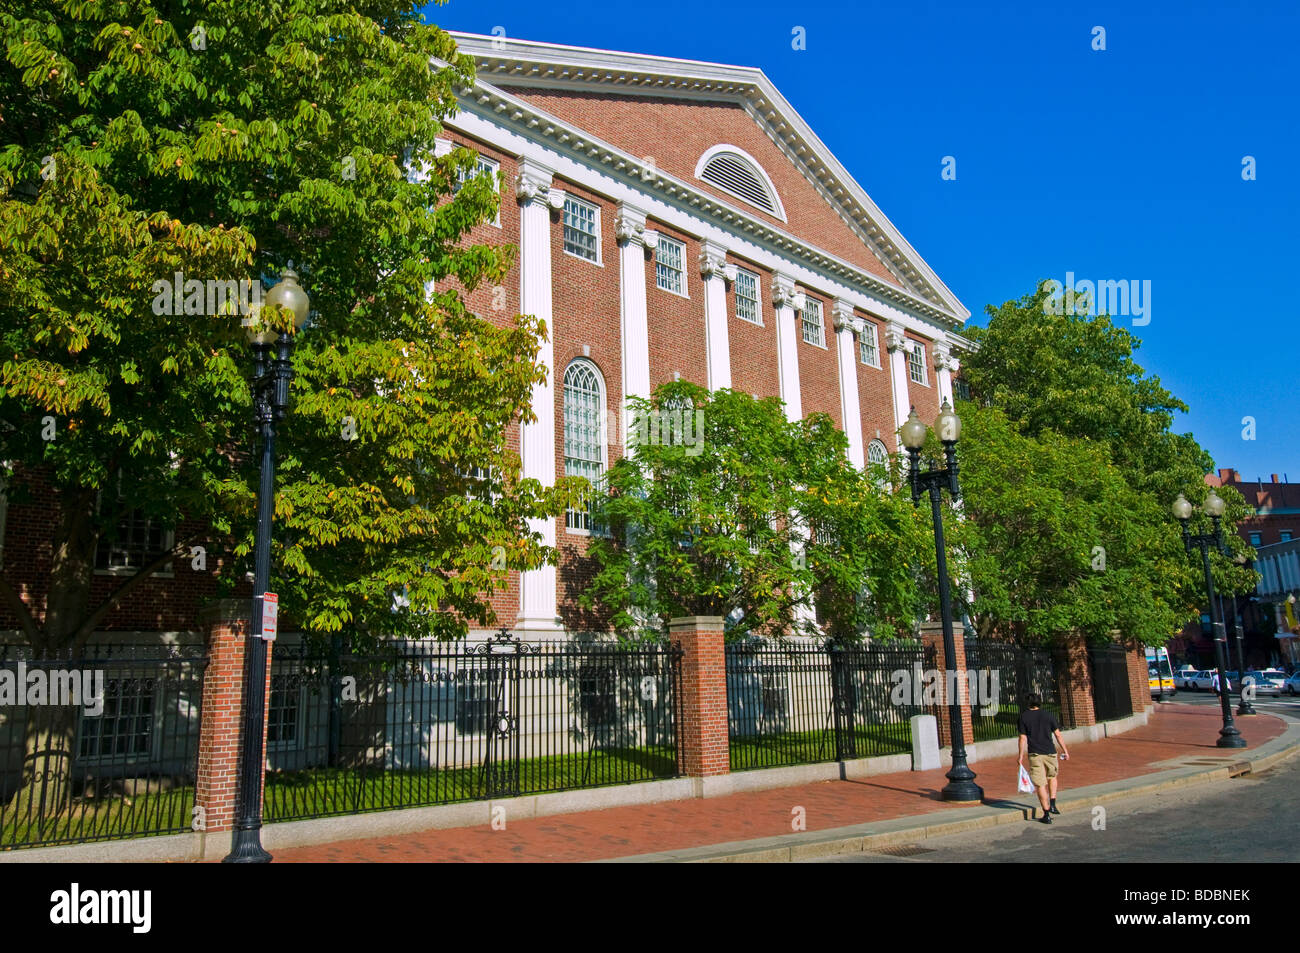 Harvard University Boston - Stock Image